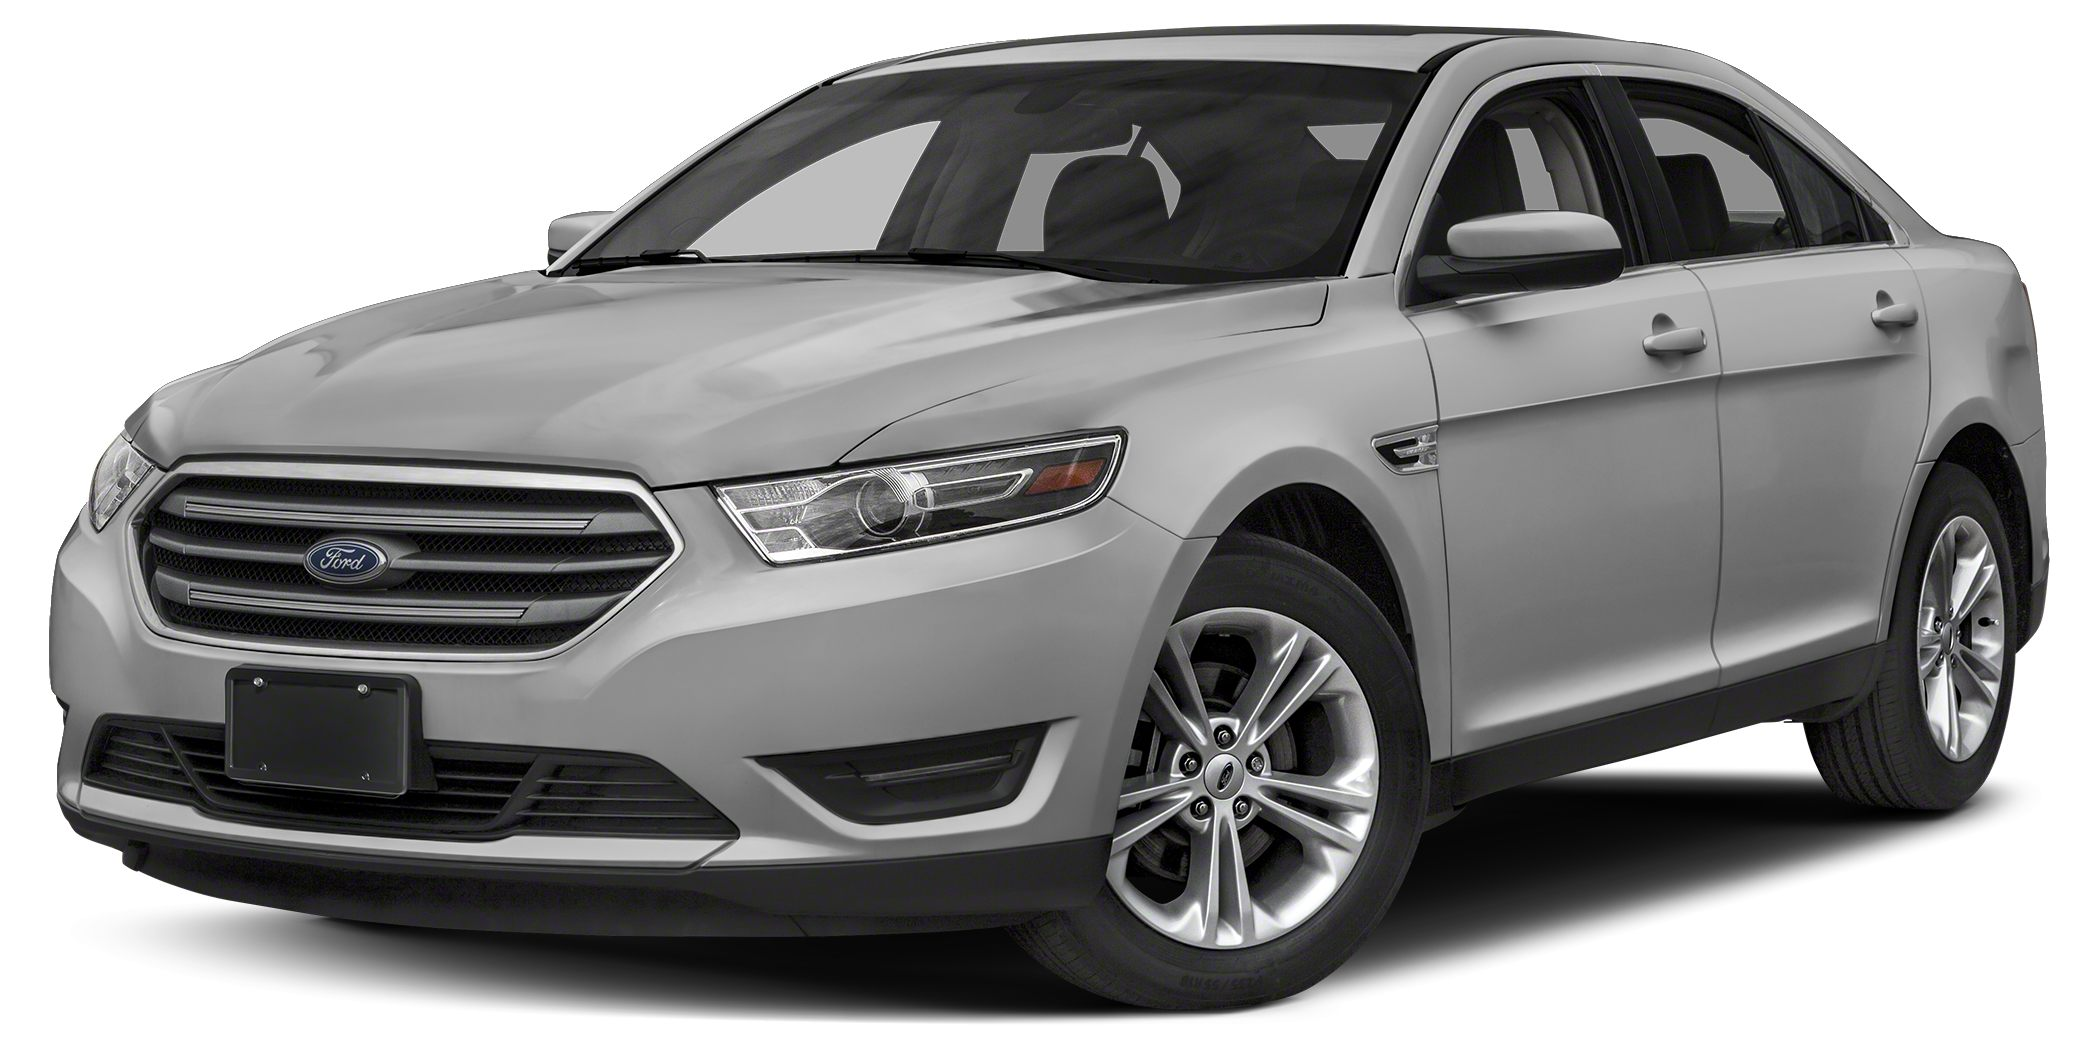 2016 Ford Taurus Limited 19 Premium Painted Aluminum Wheels Air Conditioning Heated  Cooled Per